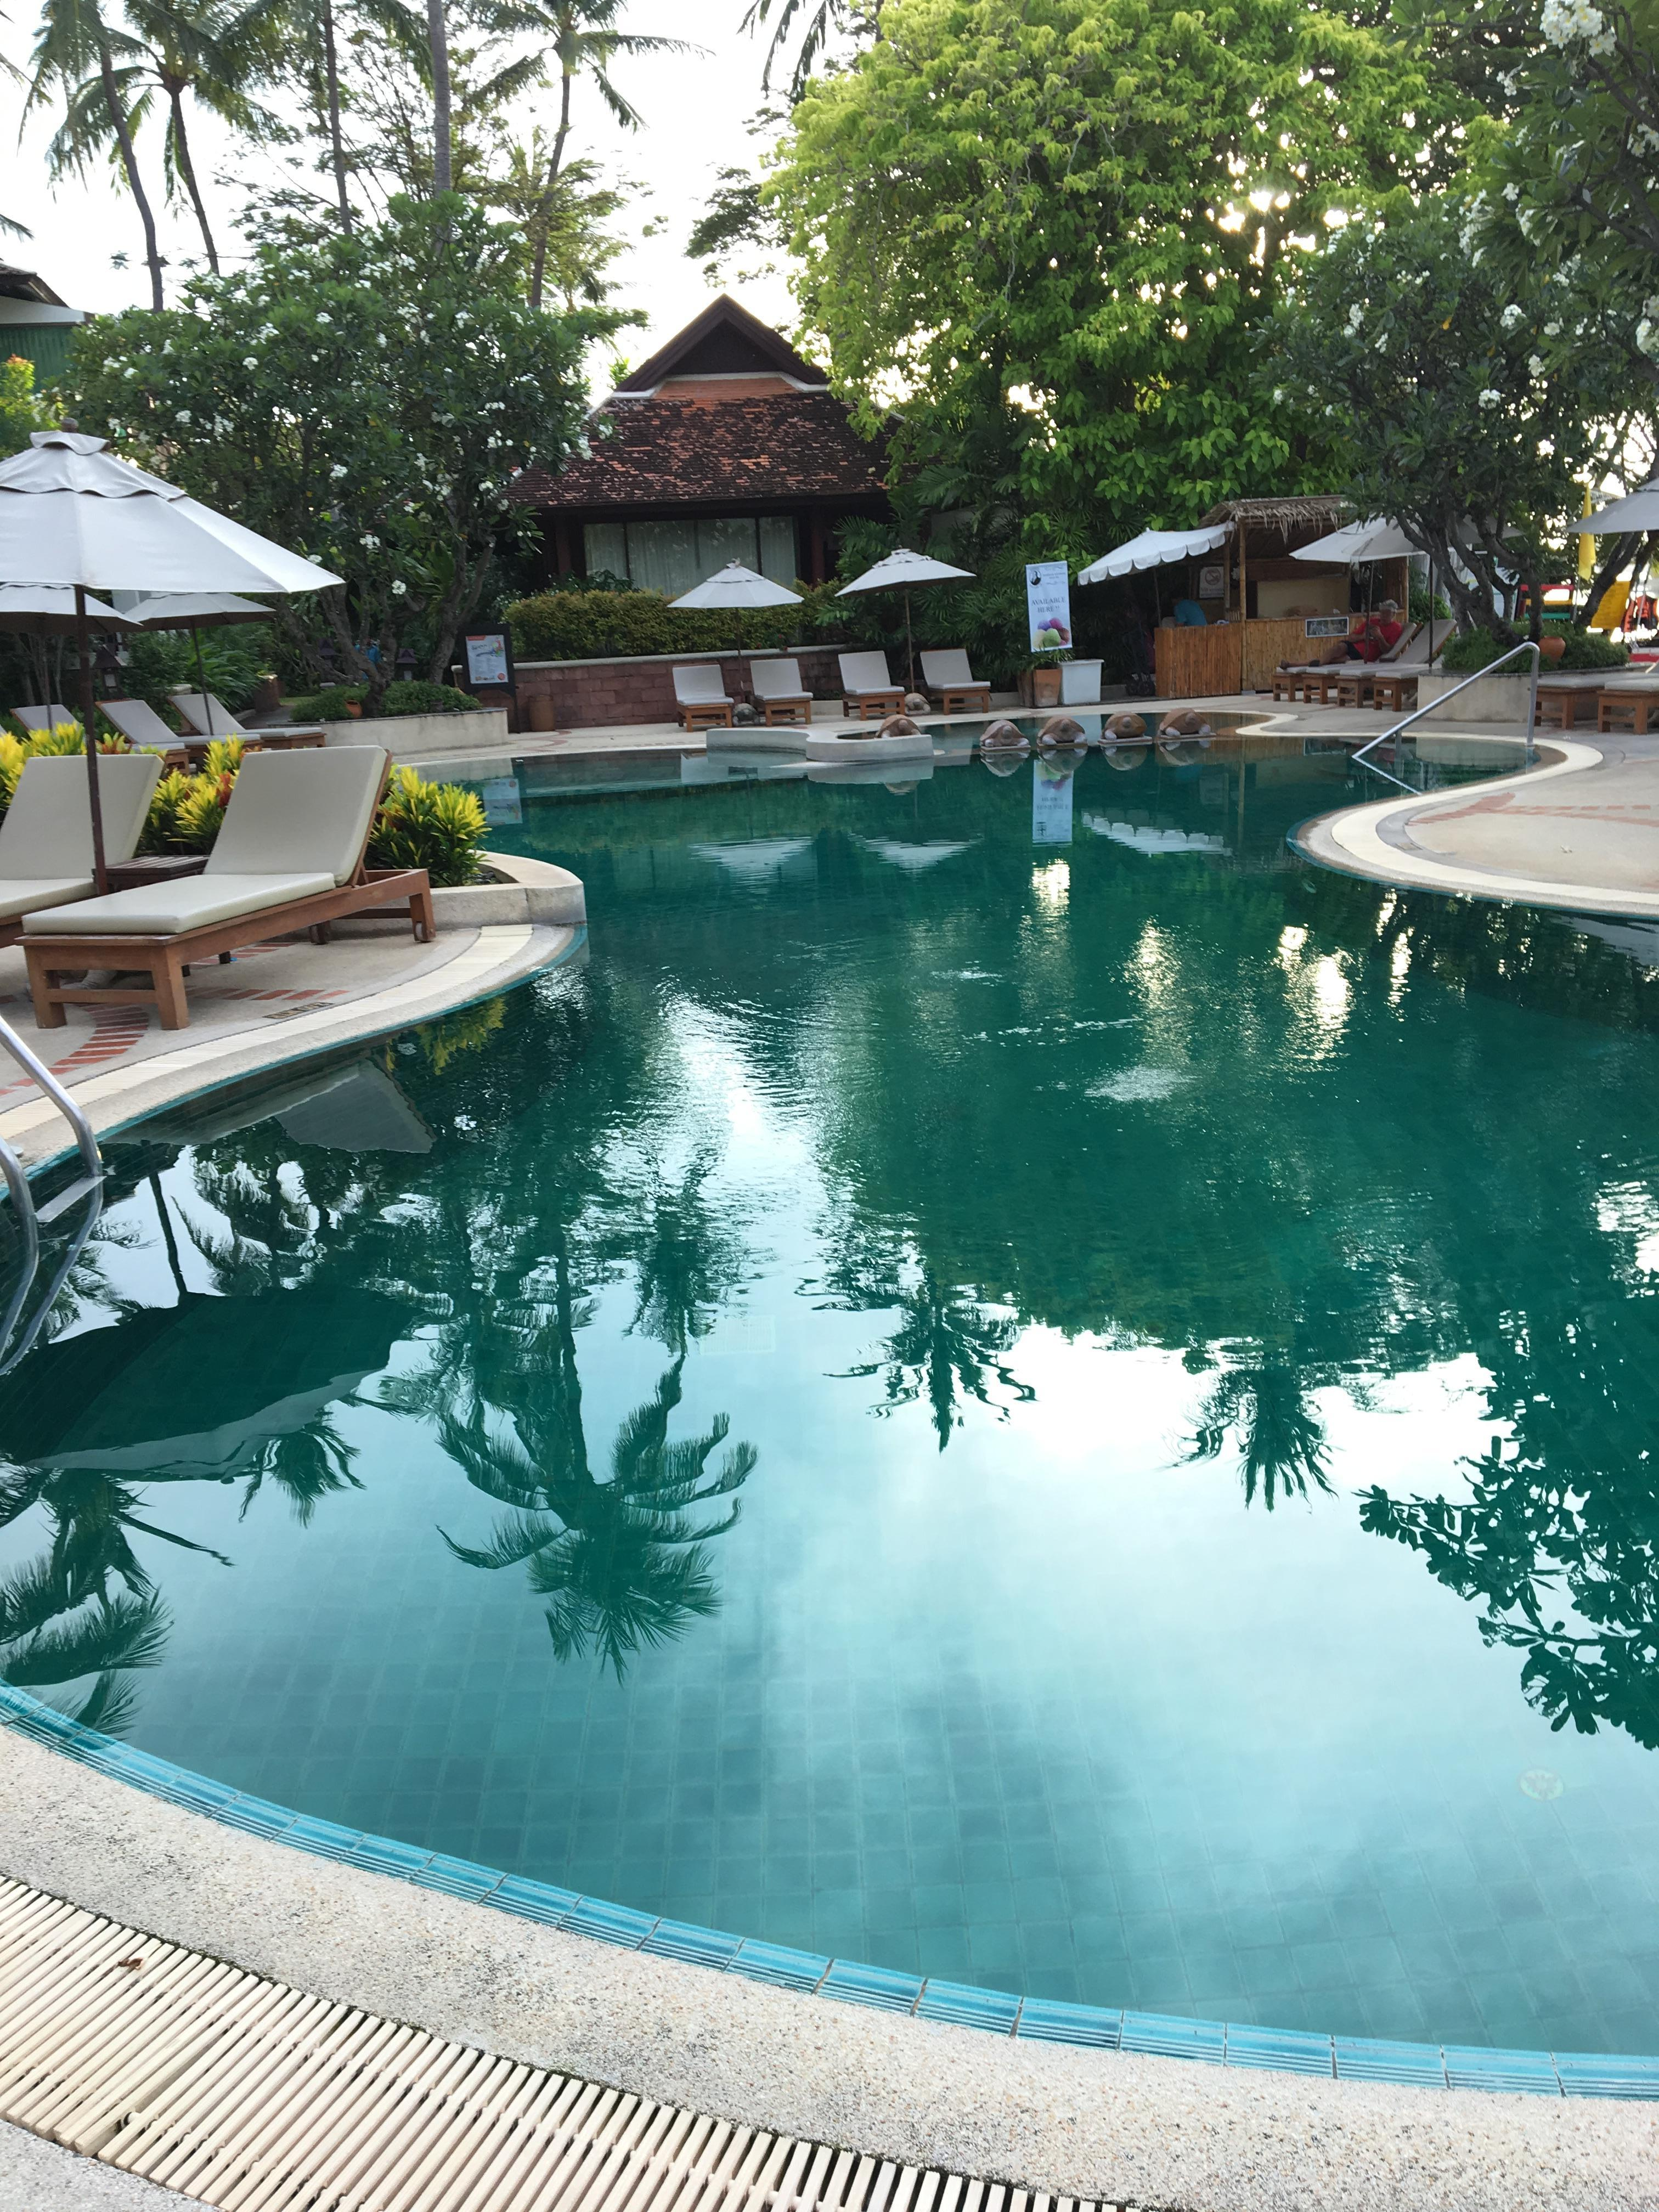 Chaweng Regent Beach Resort Deals Reviews Koh Samui Islands - Incredible swimming pool cost 2000000